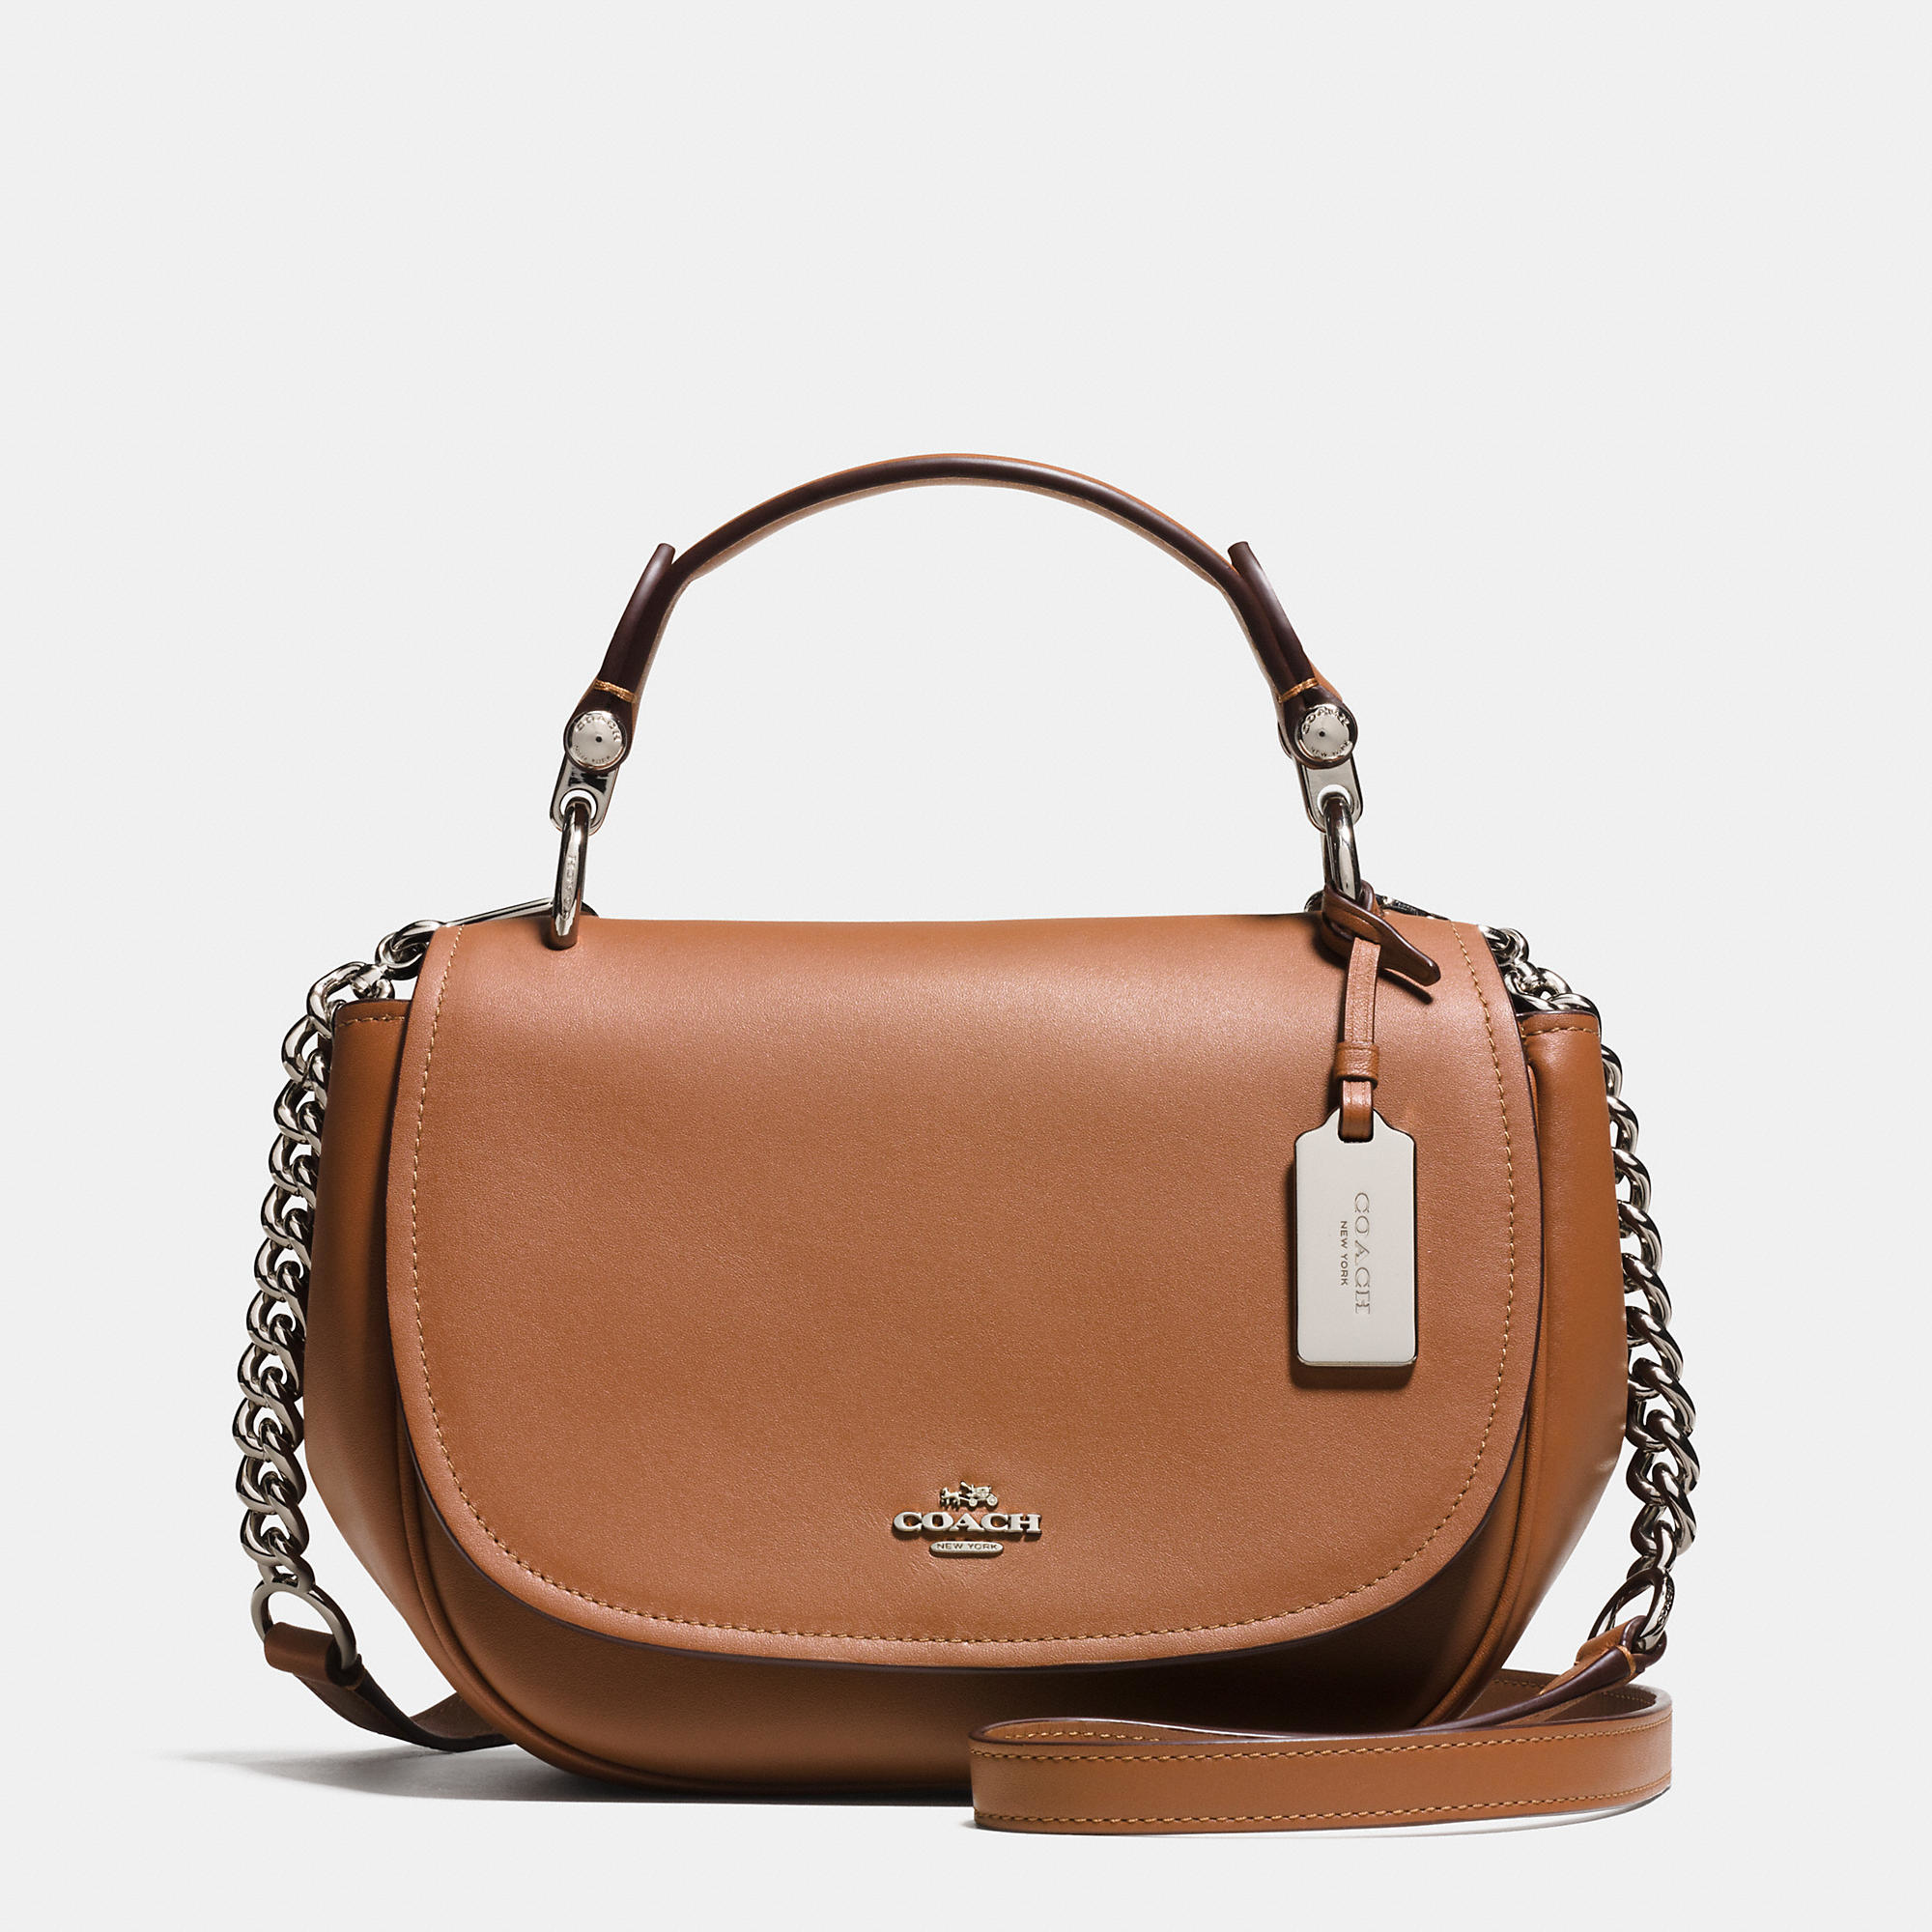 Coach Nomad Top Handle Crossbody In Glovetanned Leather In